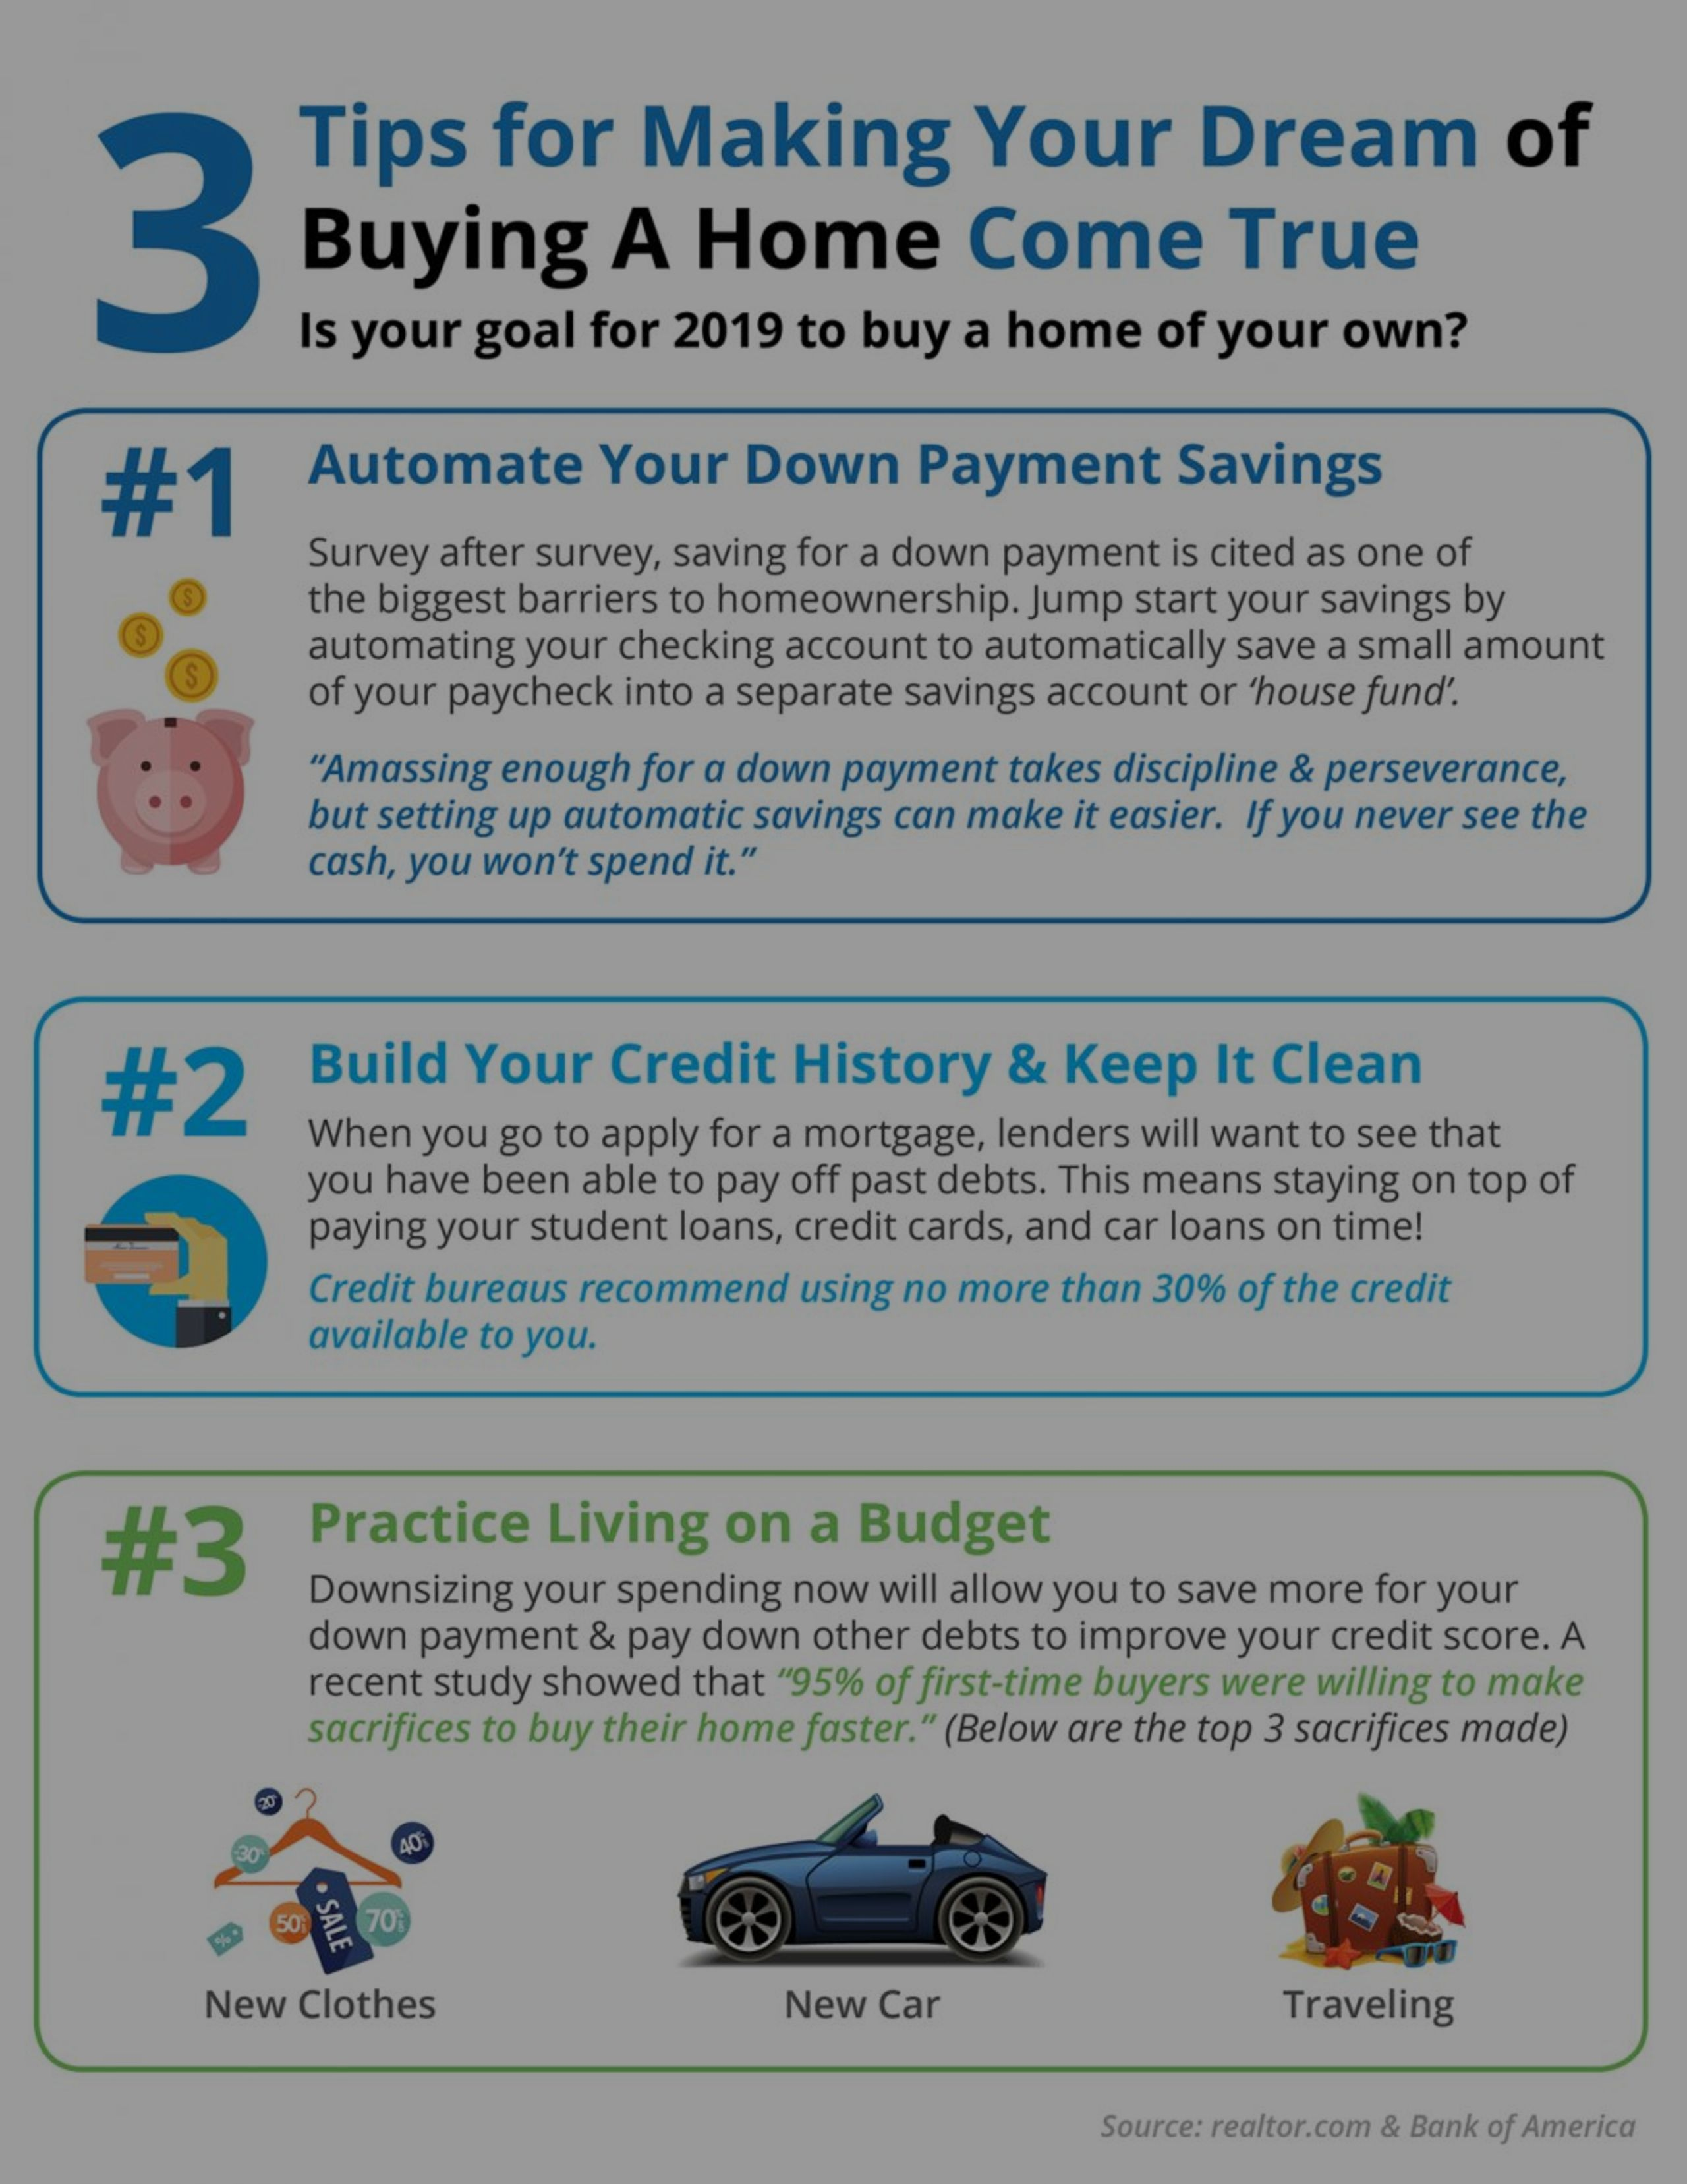 3 Tips for Making Your Dream of Buying A Home Come True